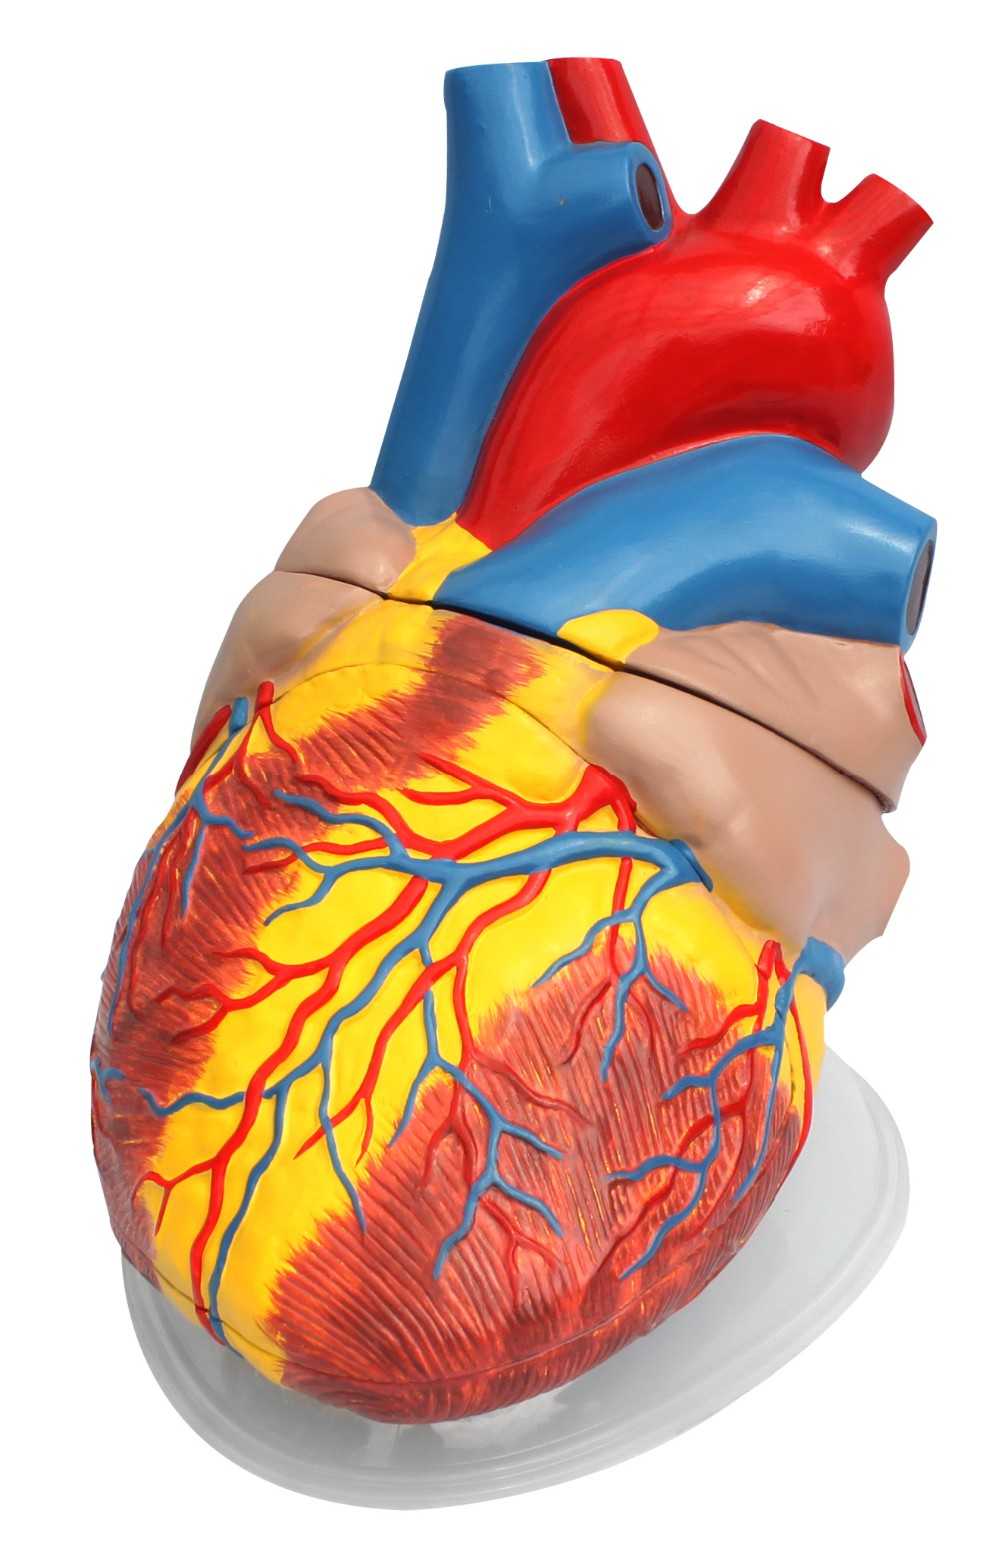 Pvc 5times Of Lize Size Anatomical Human Heart Model - Buy Anatomical  Model,Human Heart,Medical Model Product on Alibaba com